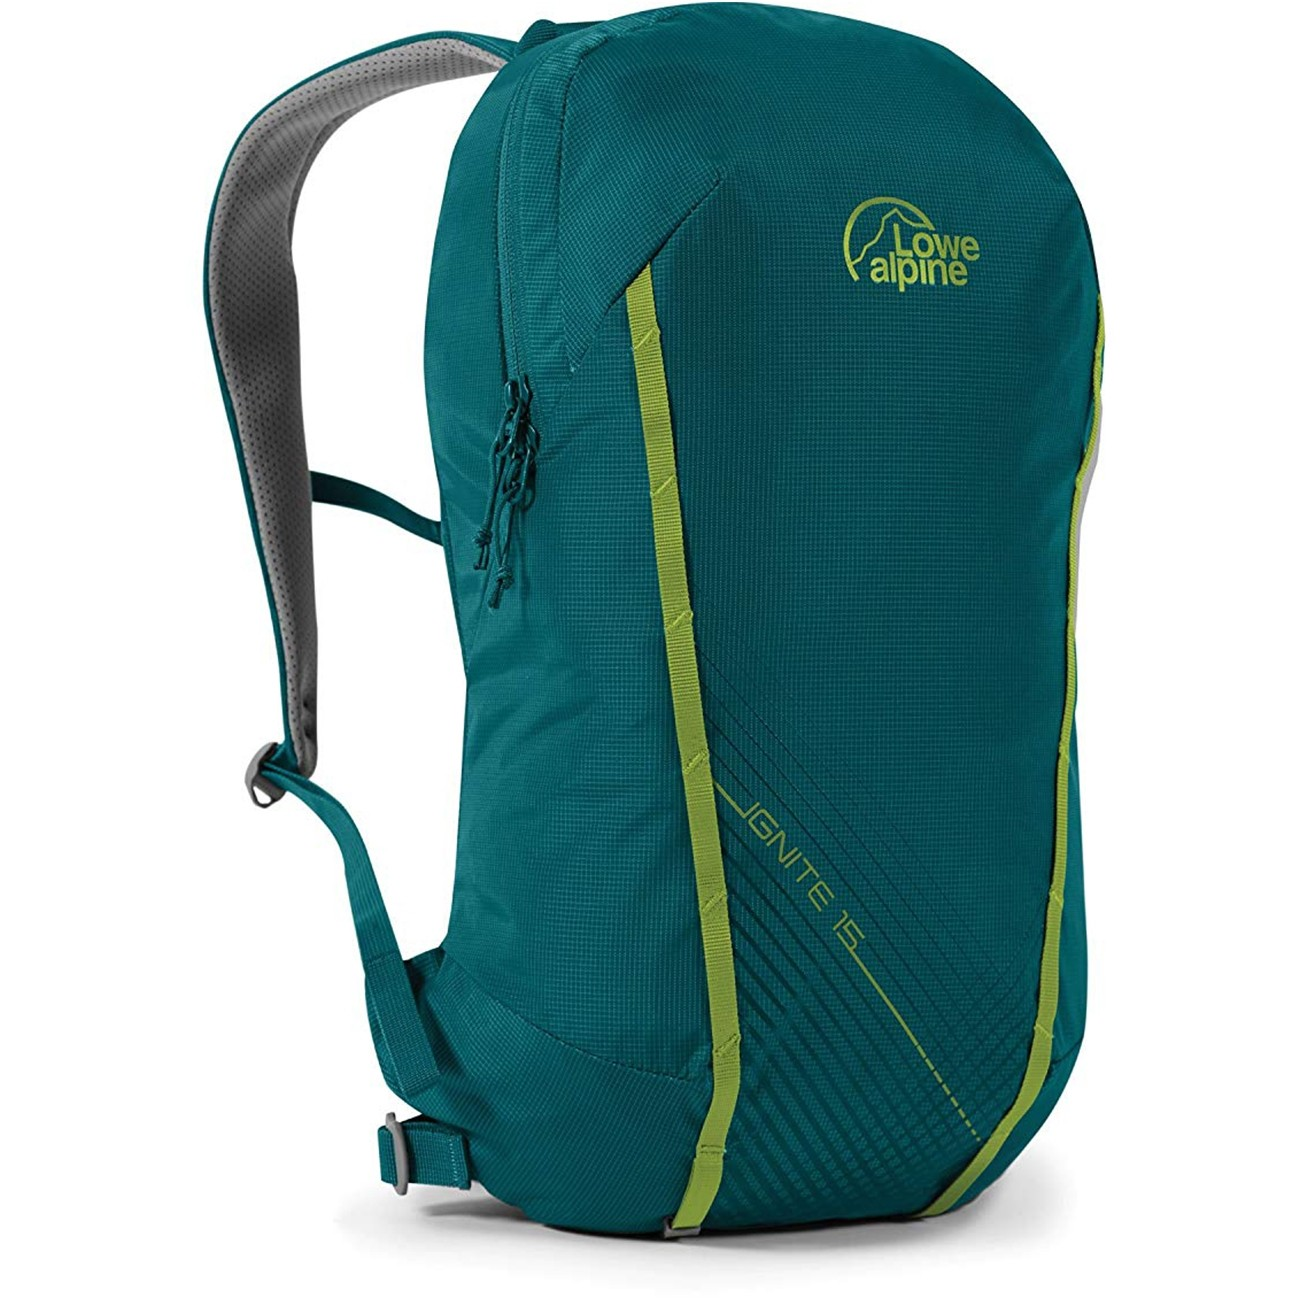 Lowe Alpine Ignite 15 Rucksack - Shaded Spruce